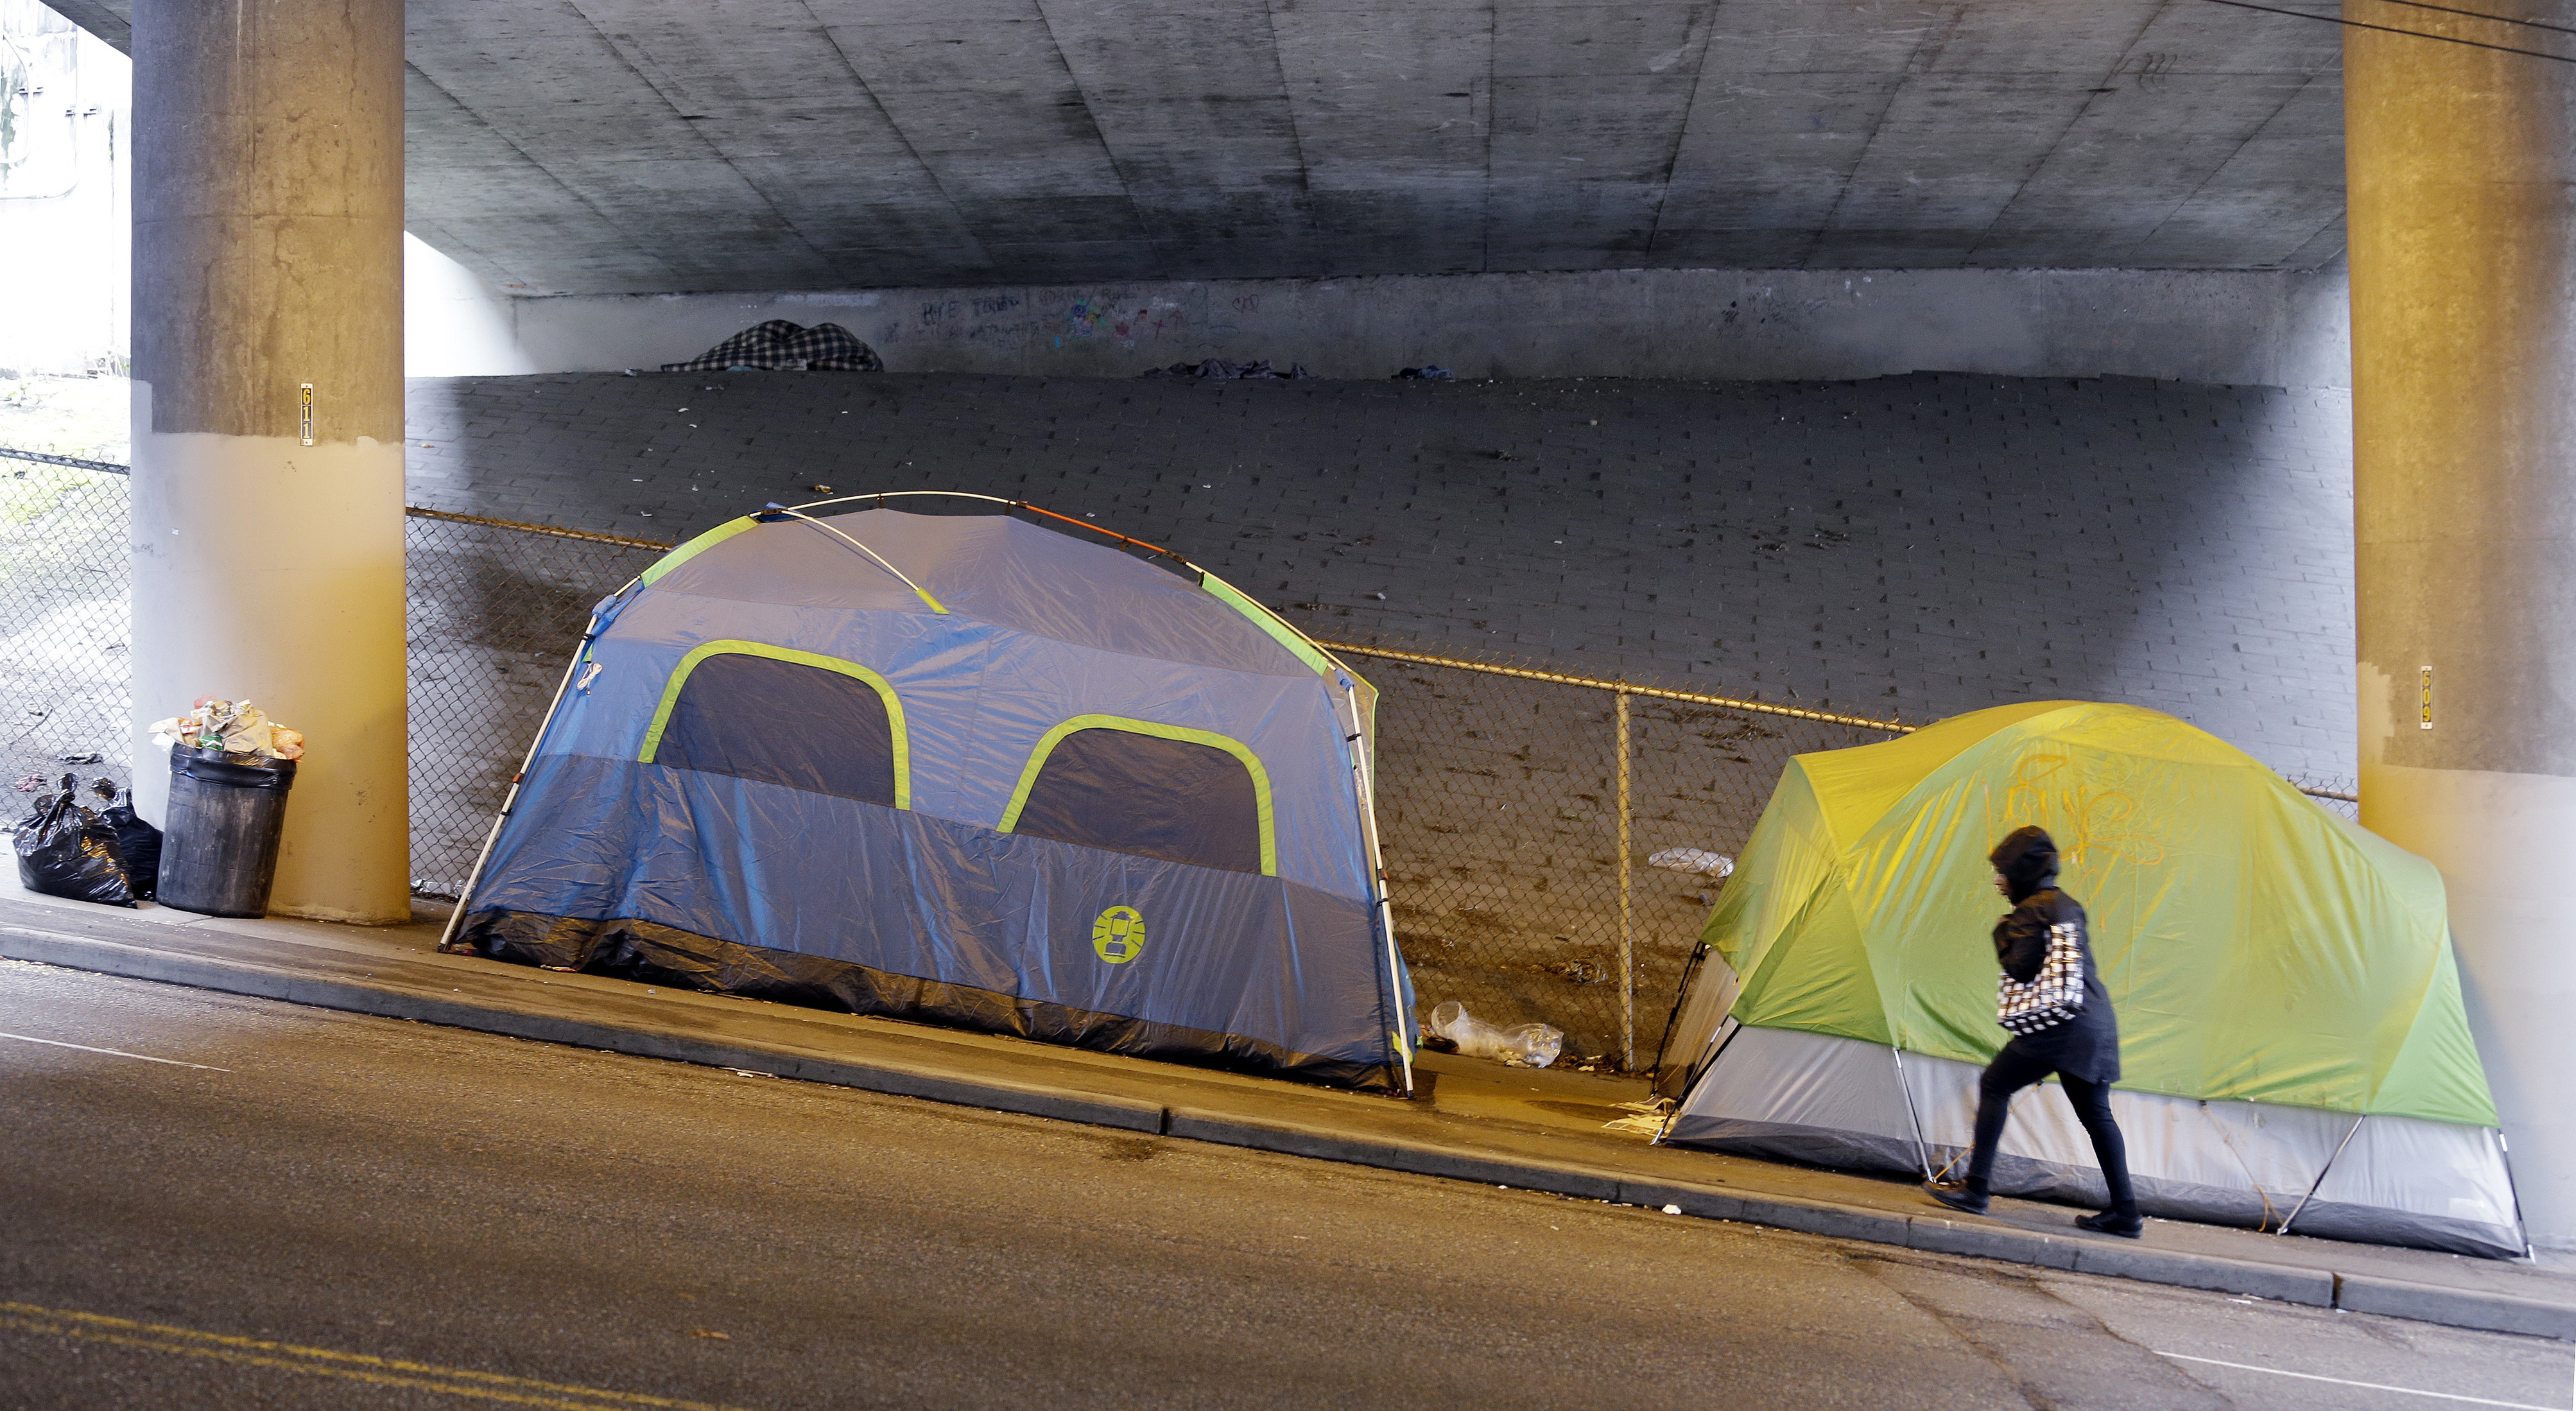 FILE - In this March 8, 2017 file photo, a person walks up a hill next to tents lined up beneath a highway and adjacent to downtown Seattle.   Microsoft pledged $500 million to address homelessness and develop affordable housing in response to the Seattle region's widening affordability gap.  The company plans a news conference, Thursday, Jan. 17, 2019.   (AP Photo/Elaine Thompson, File)